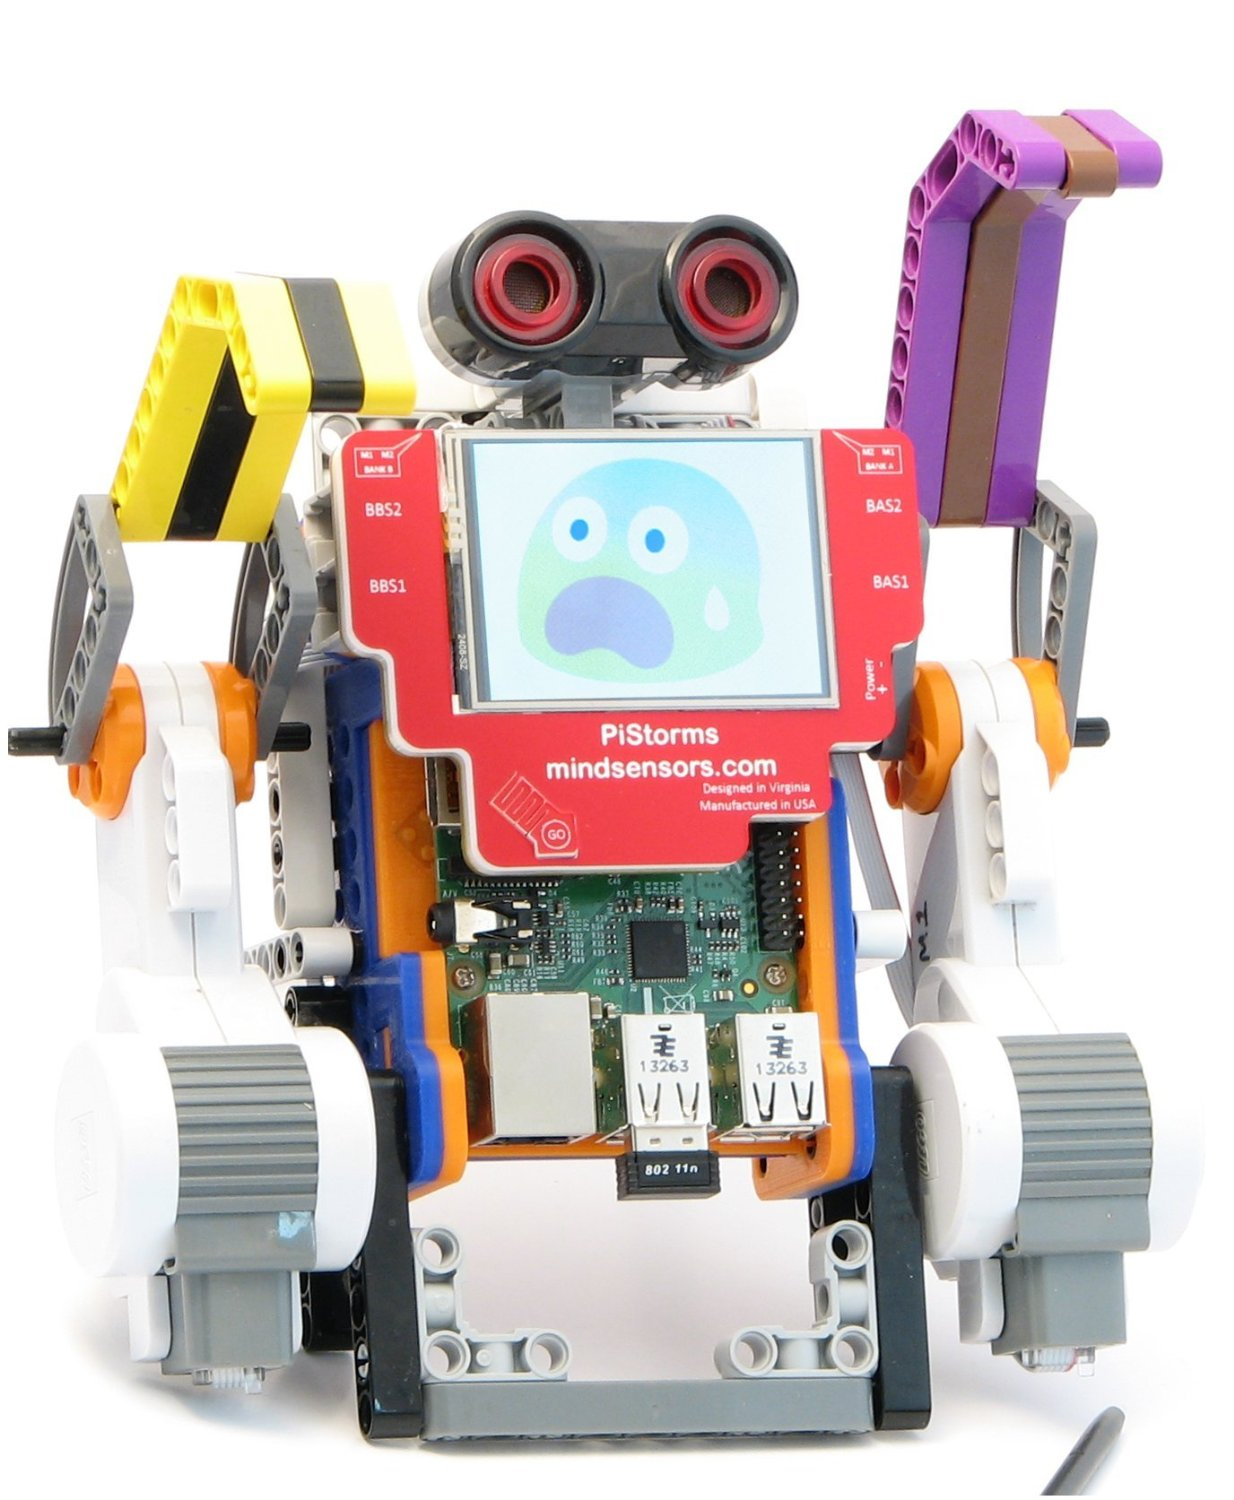 programmable-robot-kits-Pistorms